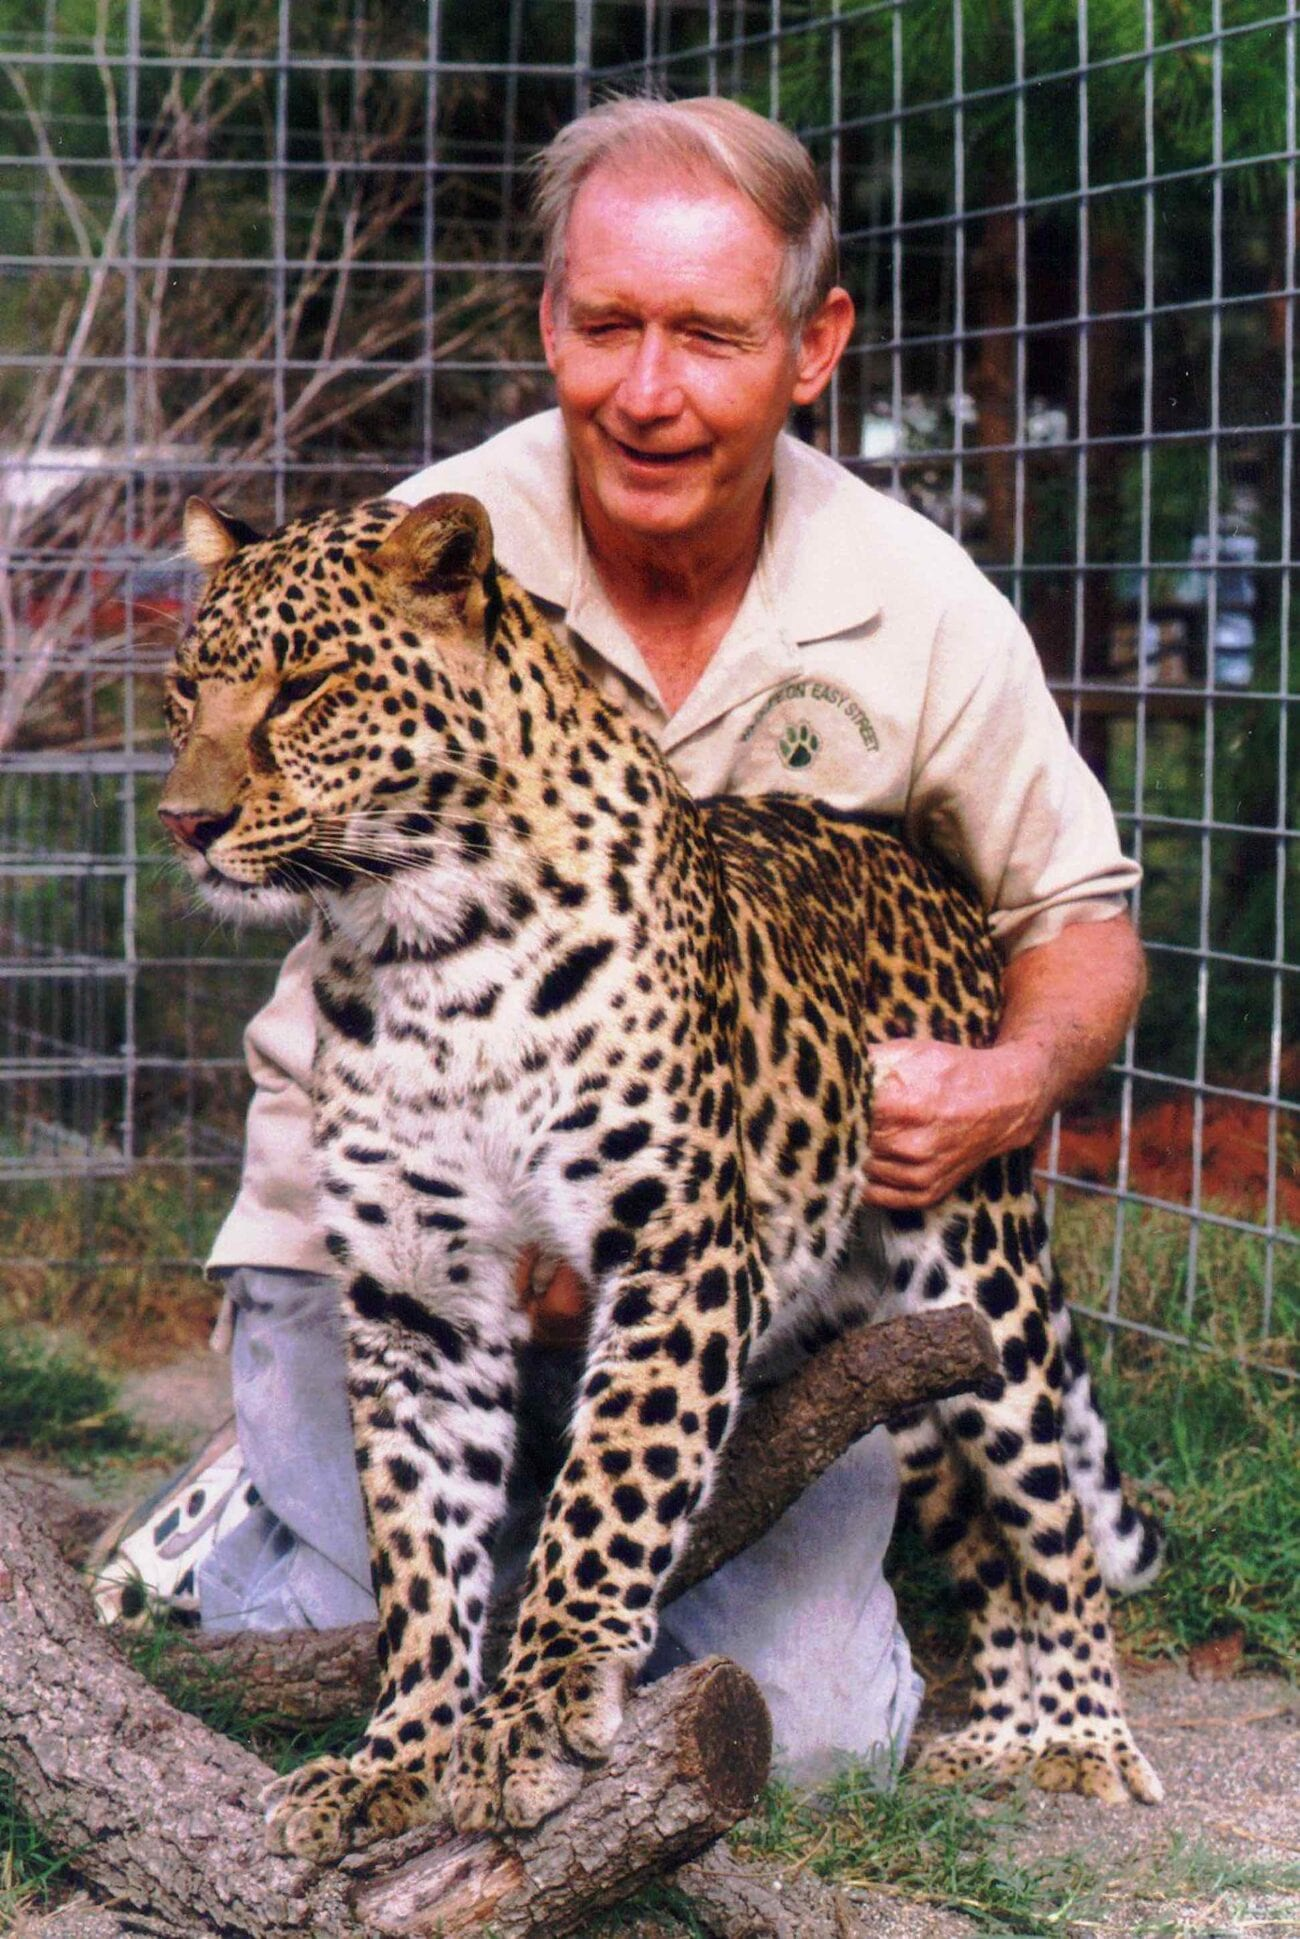 As 'Tiger King' skyrocketed in popularity, Carole Baskin has come under heavy fire. Here's what we know about the disappearance of her husband.